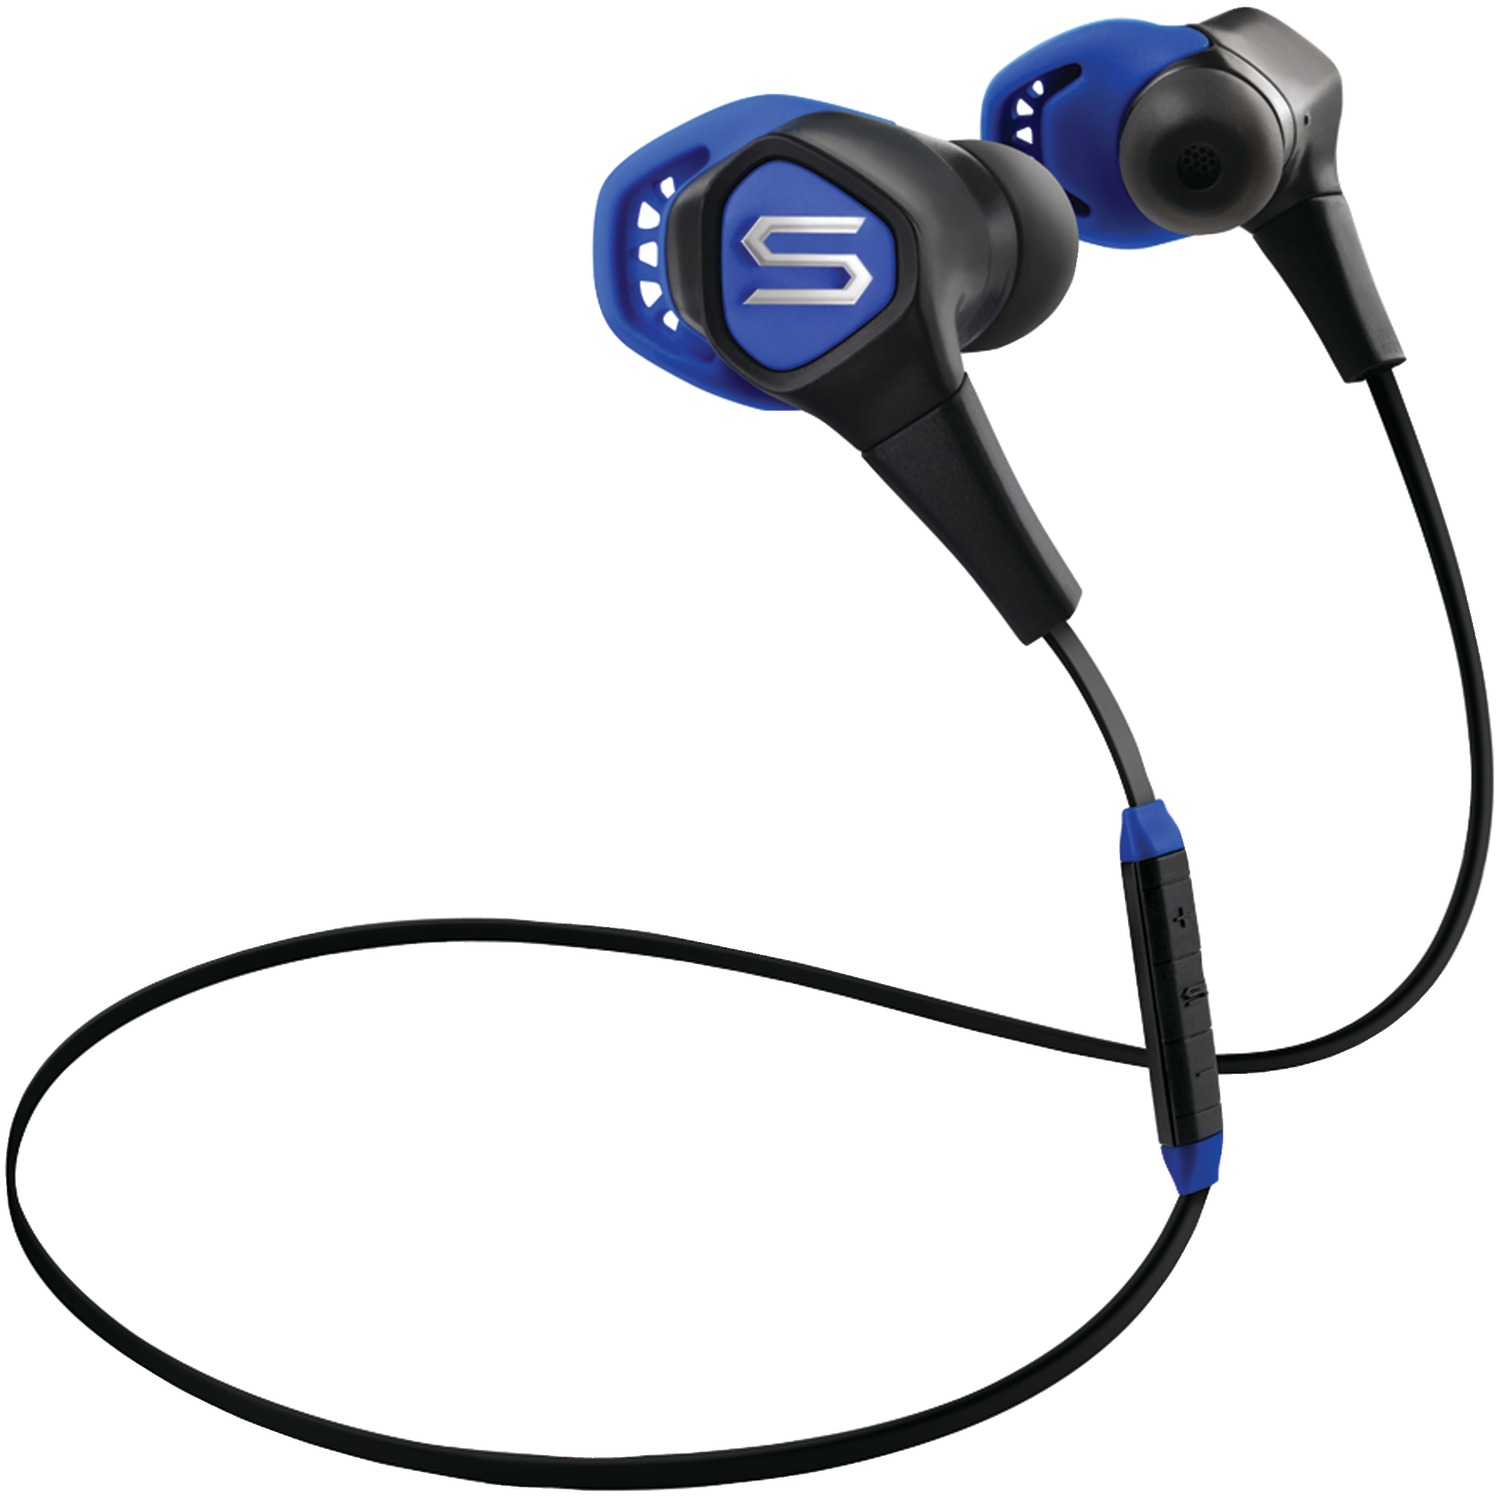 soul 81970479 run free pro hd bluetooth r sport earbuds blue. Black Bedroom Furniture Sets. Home Design Ideas